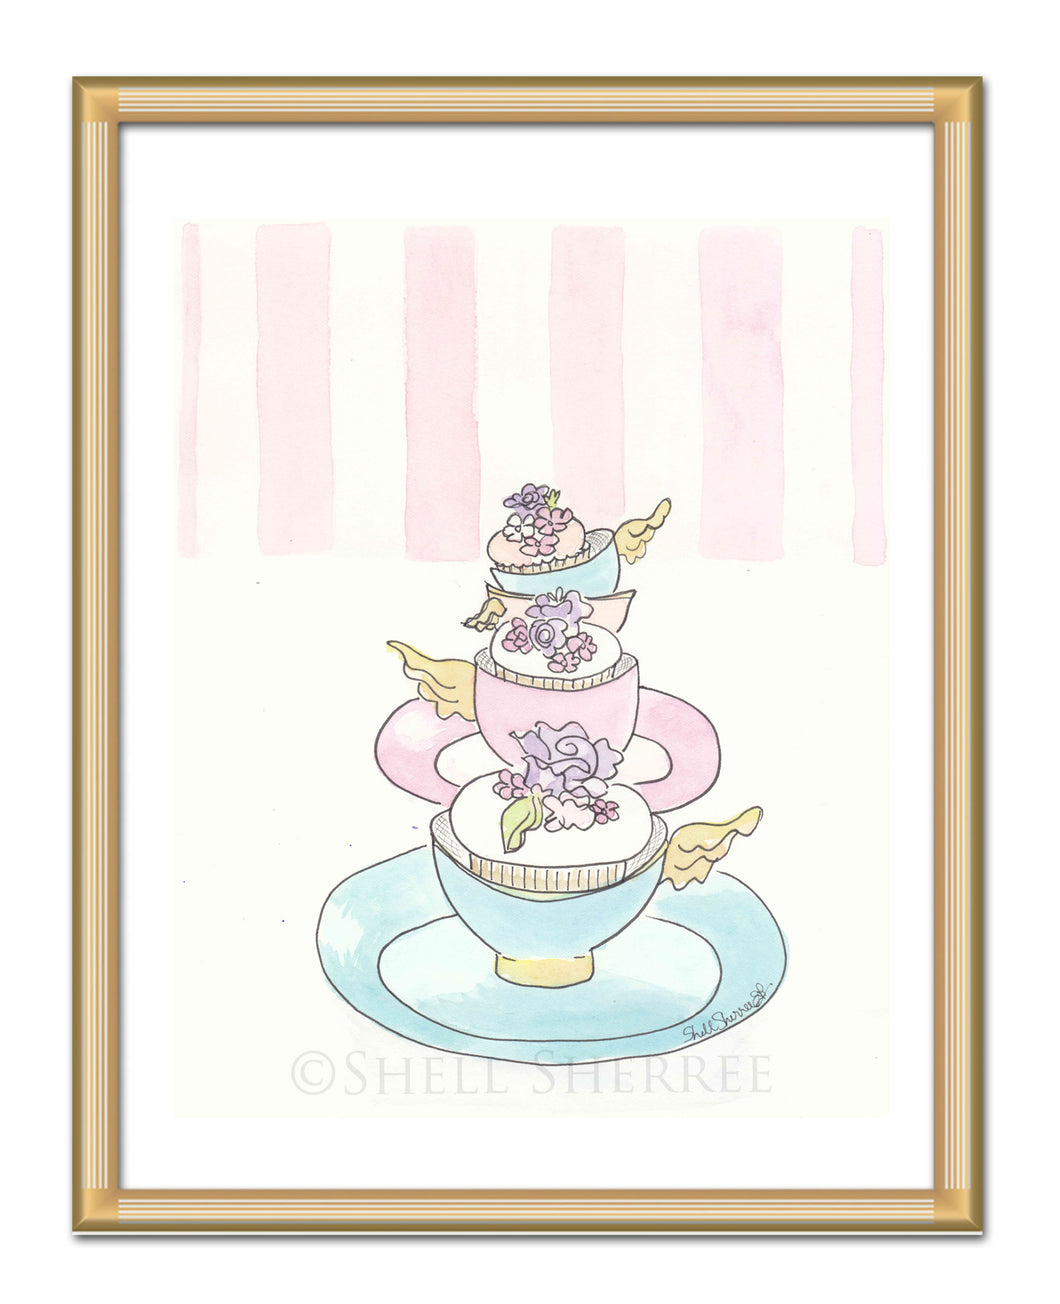 teacups with cupcakes and wings, pink and white stripes art by shell sherree